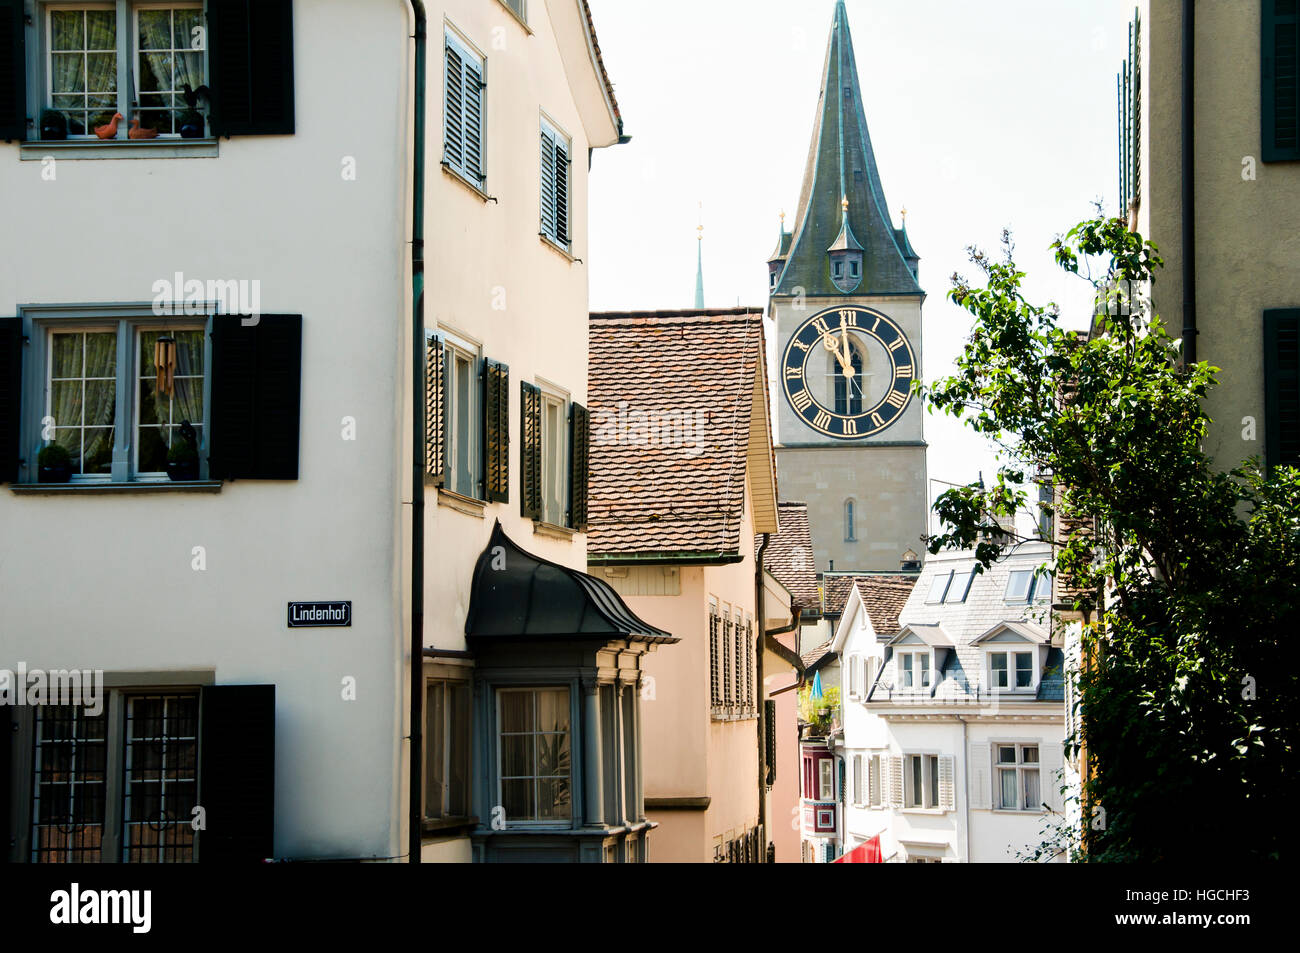 Buildings in Lindenhof - Zurich - Switzerland - Stock Image